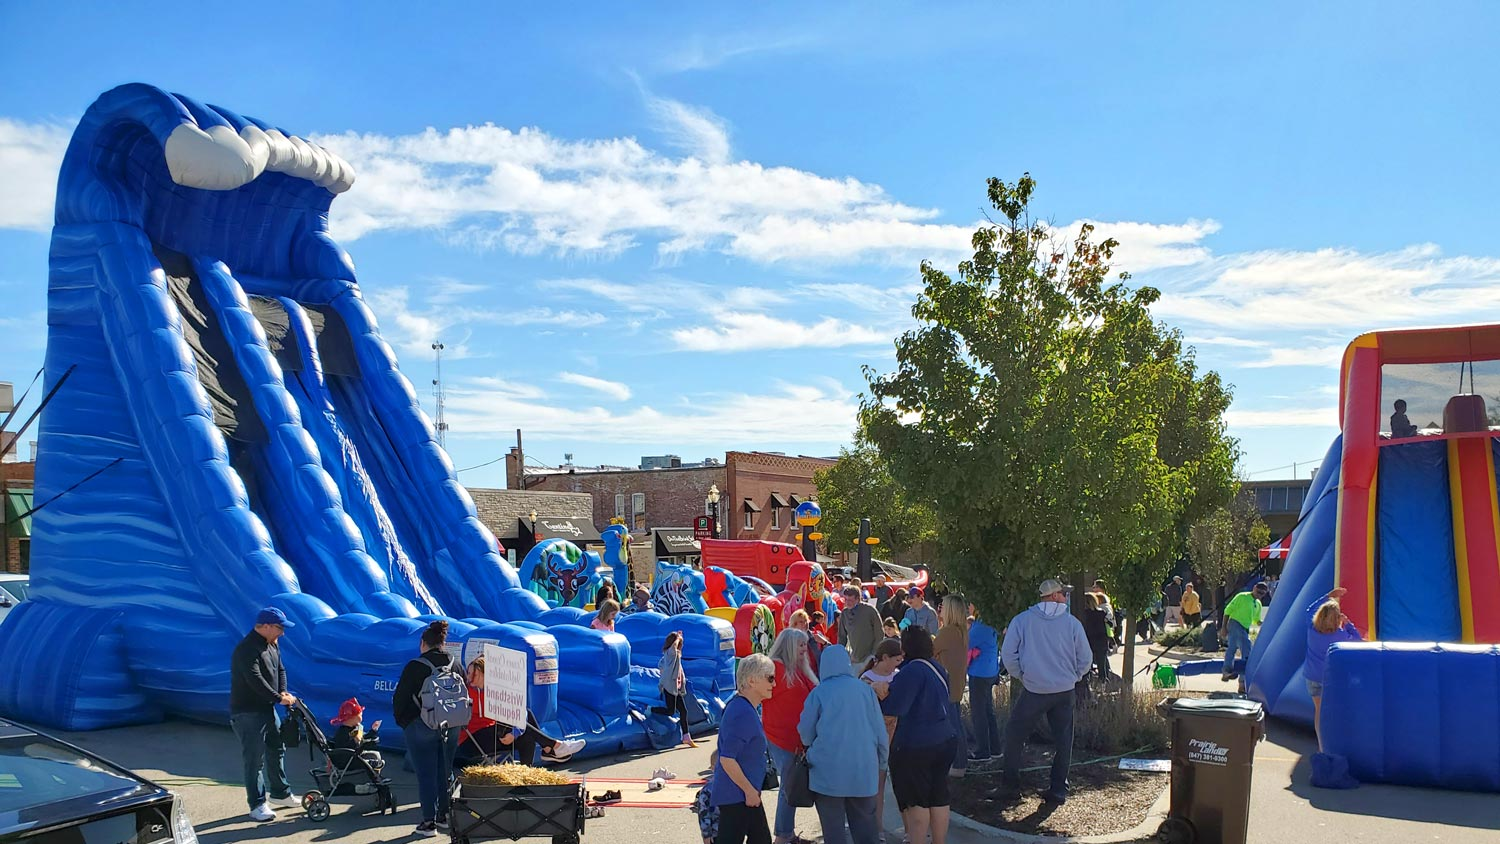 Inflatable slide and other amusements.